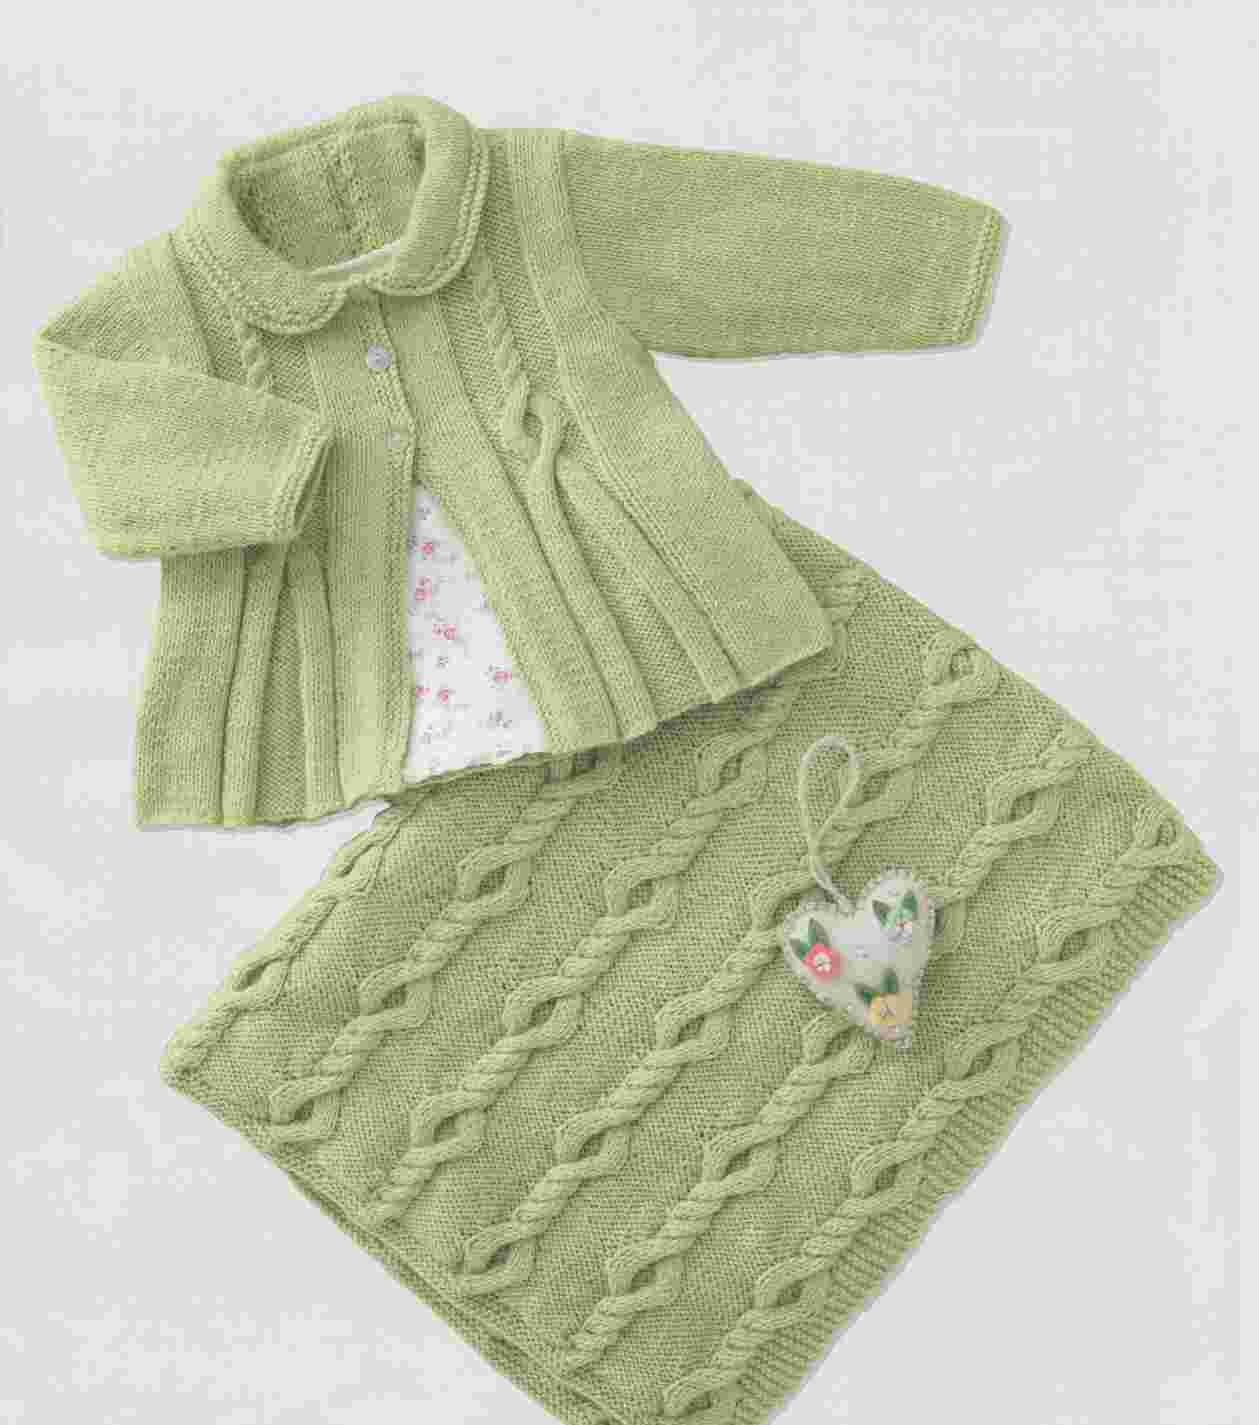 S4941 Sirdar Snuggly Baby 4ply Knitting Patterns Knitwell Wools Ltd